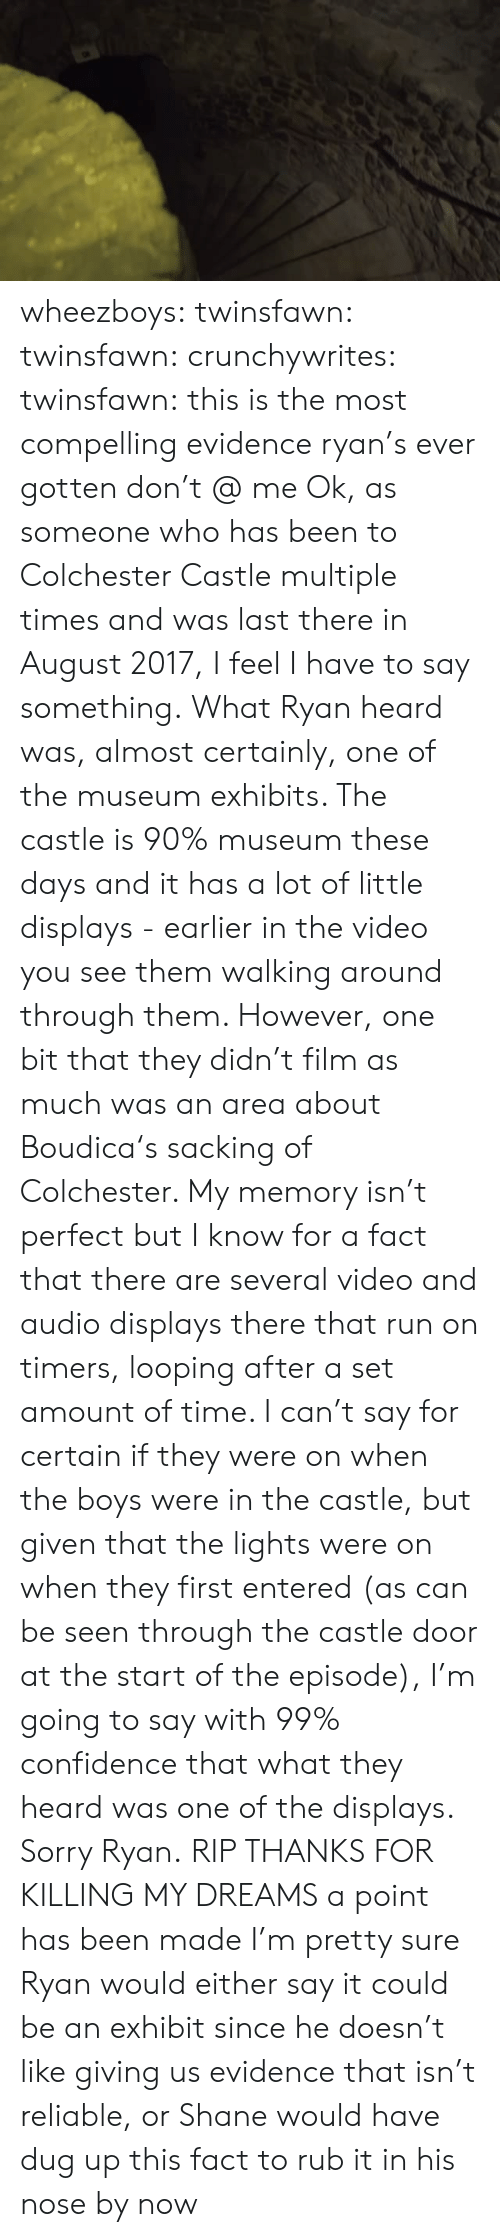 Looping: wheezboys: twinsfawn:   twinsfawn:   crunchywrites:   twinsfawn: this is the most compelling evidence ryan's ever gotten don't @ me Ok, as someone who has been to Colchester Castle multiple times and was last there in August 2017, I feel I have to say something. What Ryan heard was, almost certainly, one of the museum exhibits. The castle is 90% museum these days and it has a lot of little displays - earlier in the video you see them walking around through them. However, one bit that they didn't film as much was an area about   Boudica's sacking of Colchester. My memory isn't perfect but I know for a fact that there are several video and audio displays there that run on timers, looping after a set amount of time. I can't say for certain if they were on when the boys were in the castle, but given that the lights were on when they first entered (as can be seen through the castle door at the start of the episode), I'm going to say with 99% confidence that what they heard was one of the displays. Sorry Ryan.   RIP THANKS FOR KILLING MY DREAMS   a point has been made   I'm pretty sure Ryan would either say it could be an exhibit since he doesn't like giving us evidence that isn't reliable, or Shane would have dug up this fact to rub it in his nose by now